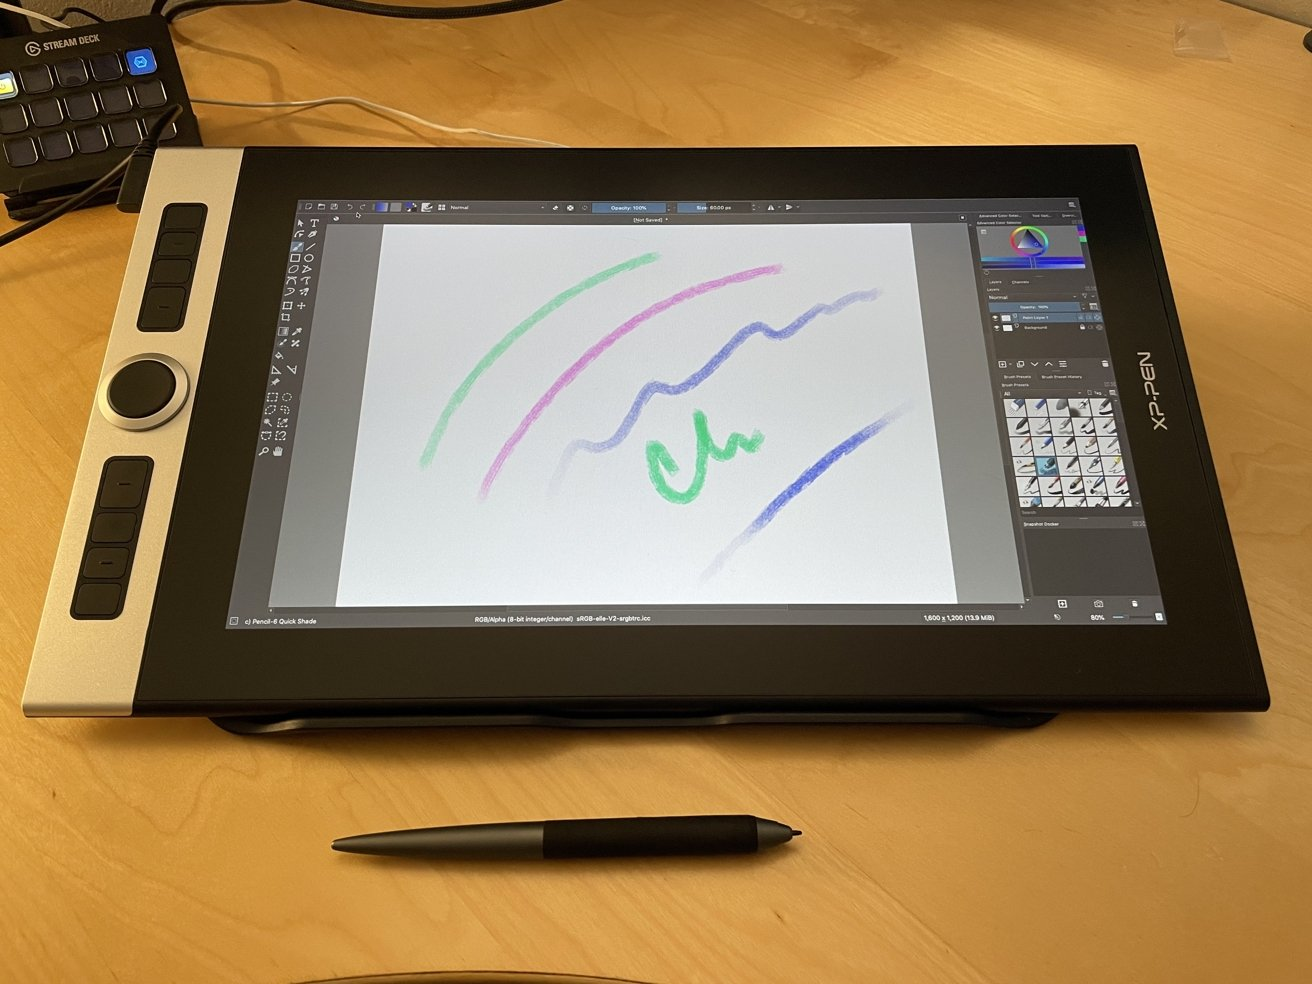 Approximately 8,192 levels of pressure sensitivity are offered by the tablet for drawing.